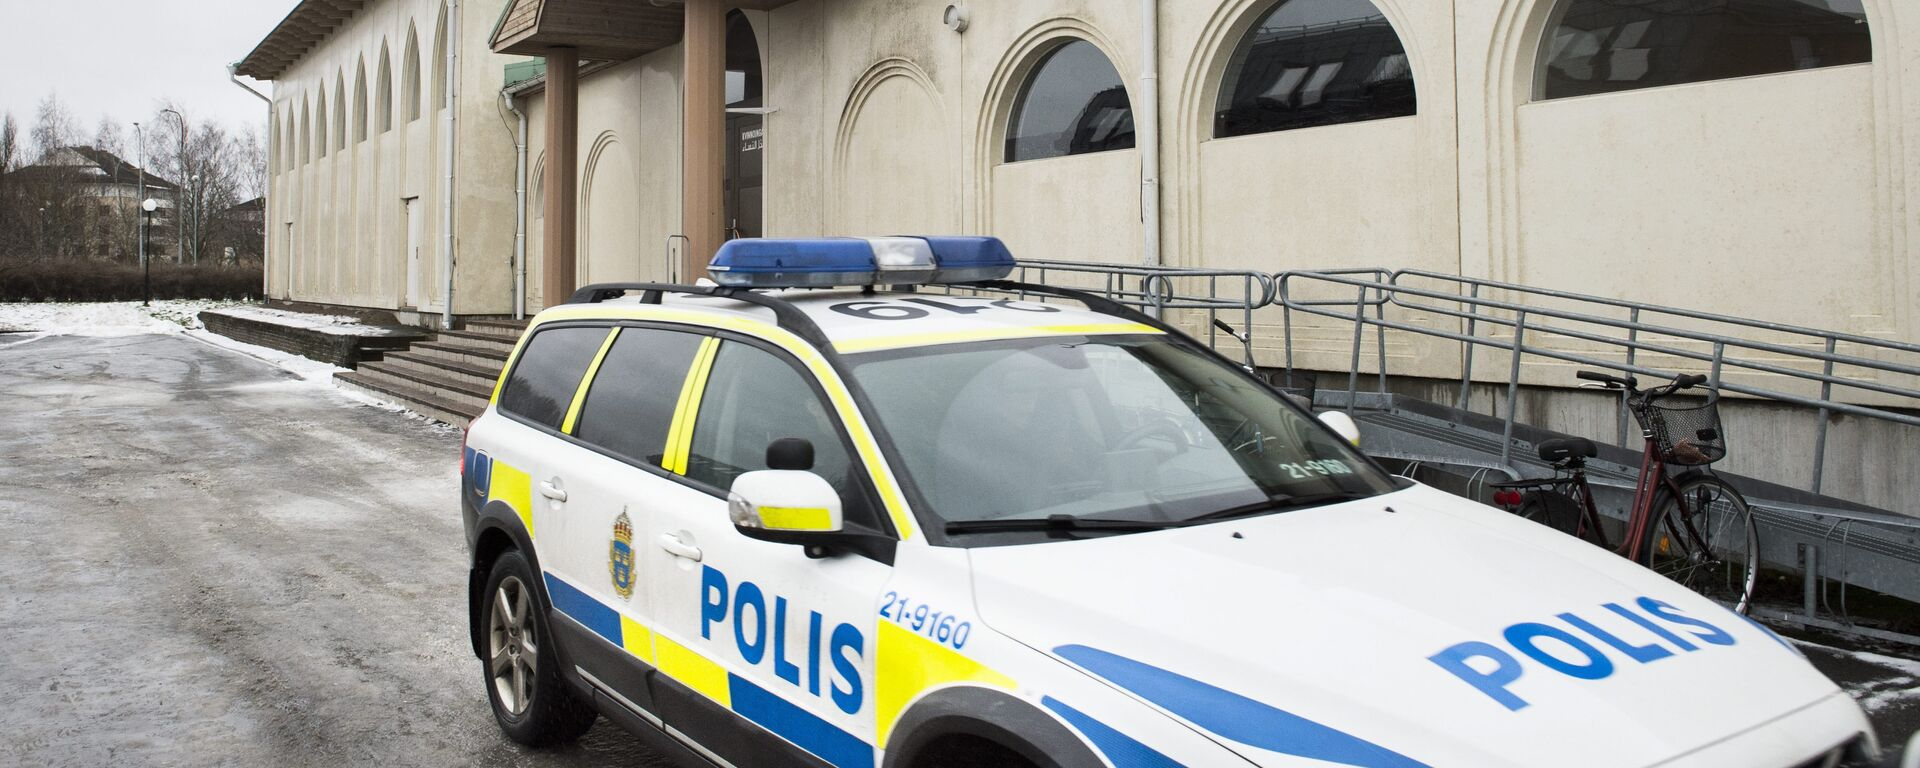 (File) A police car is parked in front of a mosque in Uppsala, Sweden, 1 January 2015 - Sputnik International, 1920, 19.07.2021